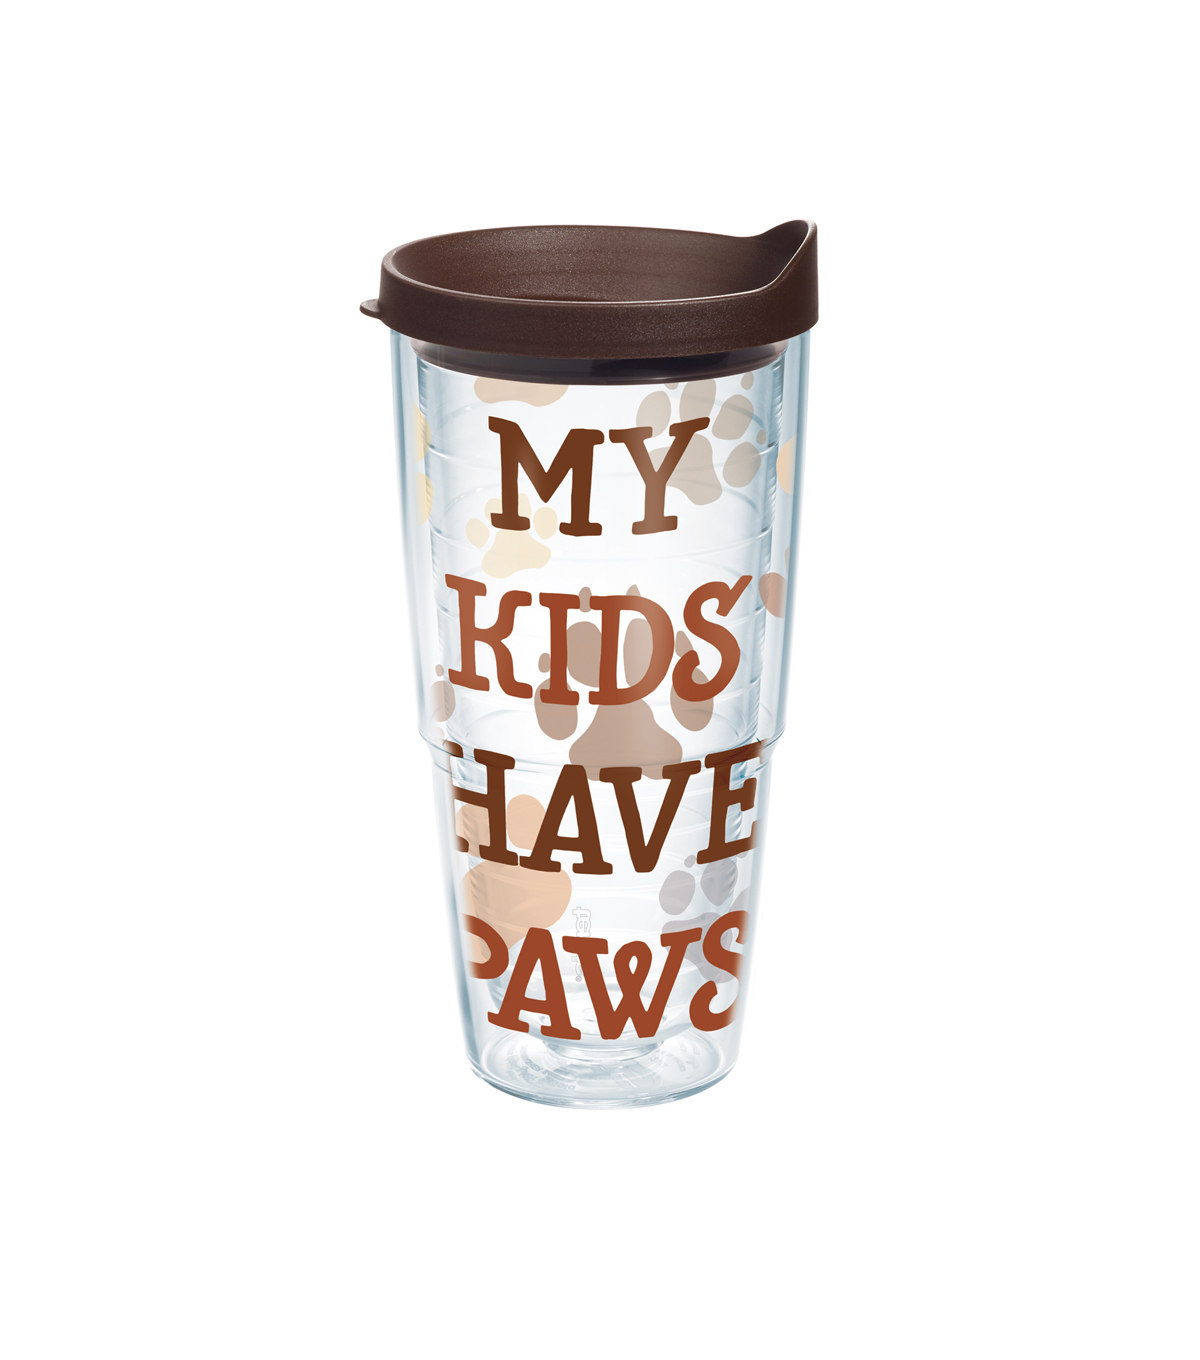 Tervis 24oz. Tumbler-My Kids Have Paws